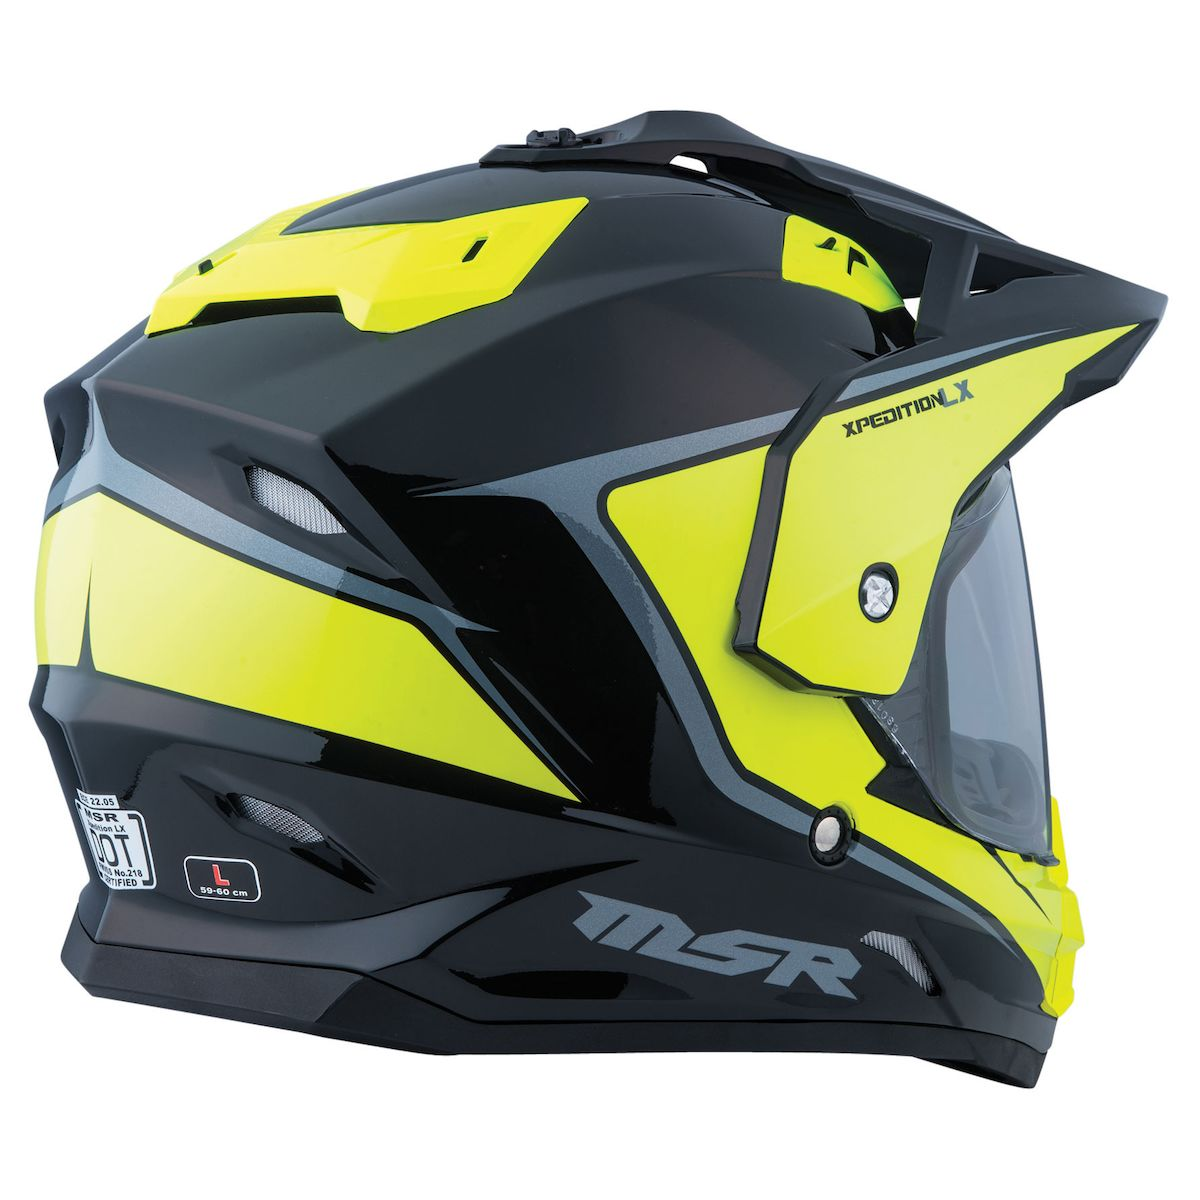 Casco Multiproposito MSR Expedition LX Negro - Hiviz - Adrian Store